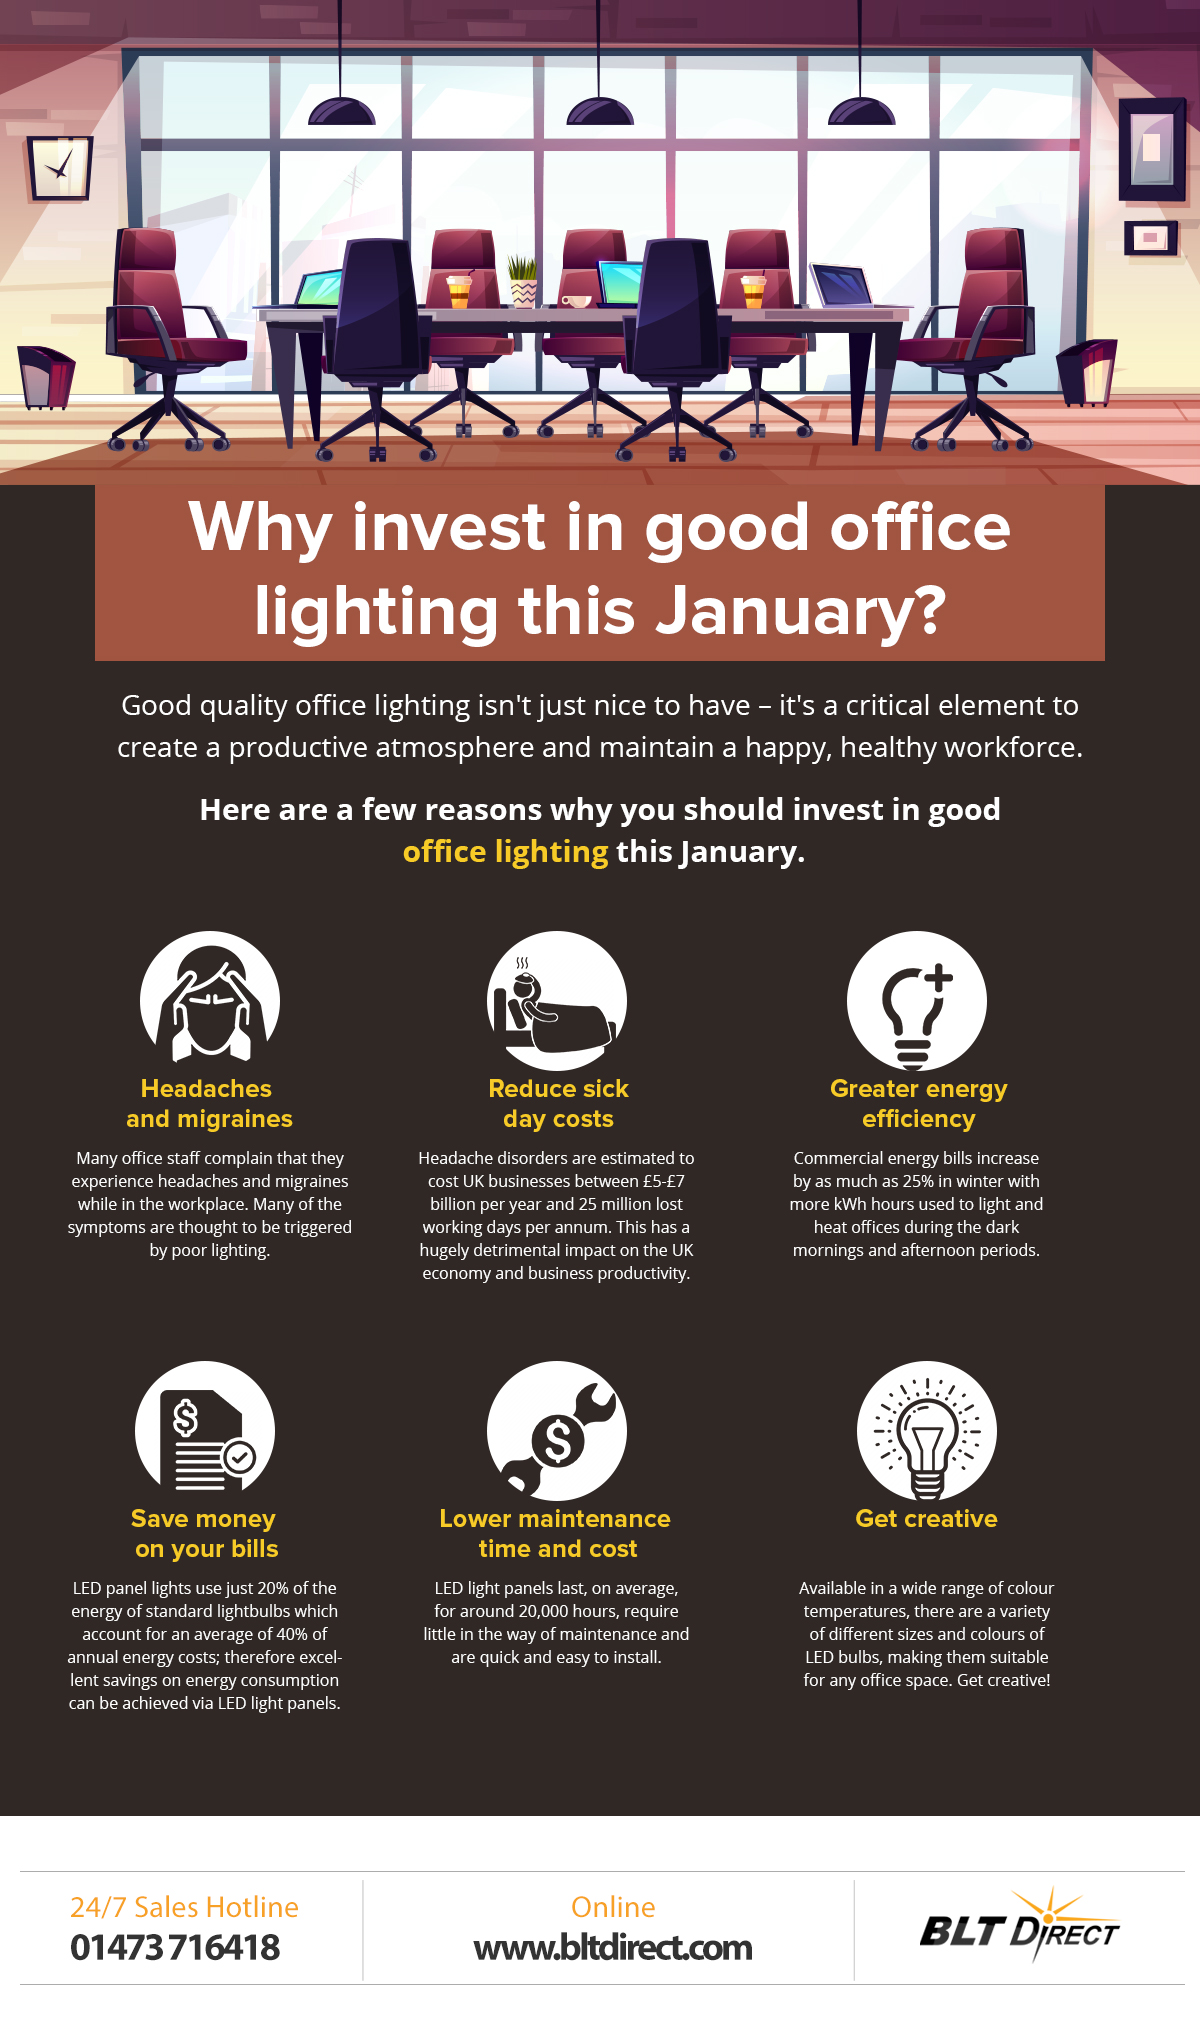 Why invest in good office lighting this January?